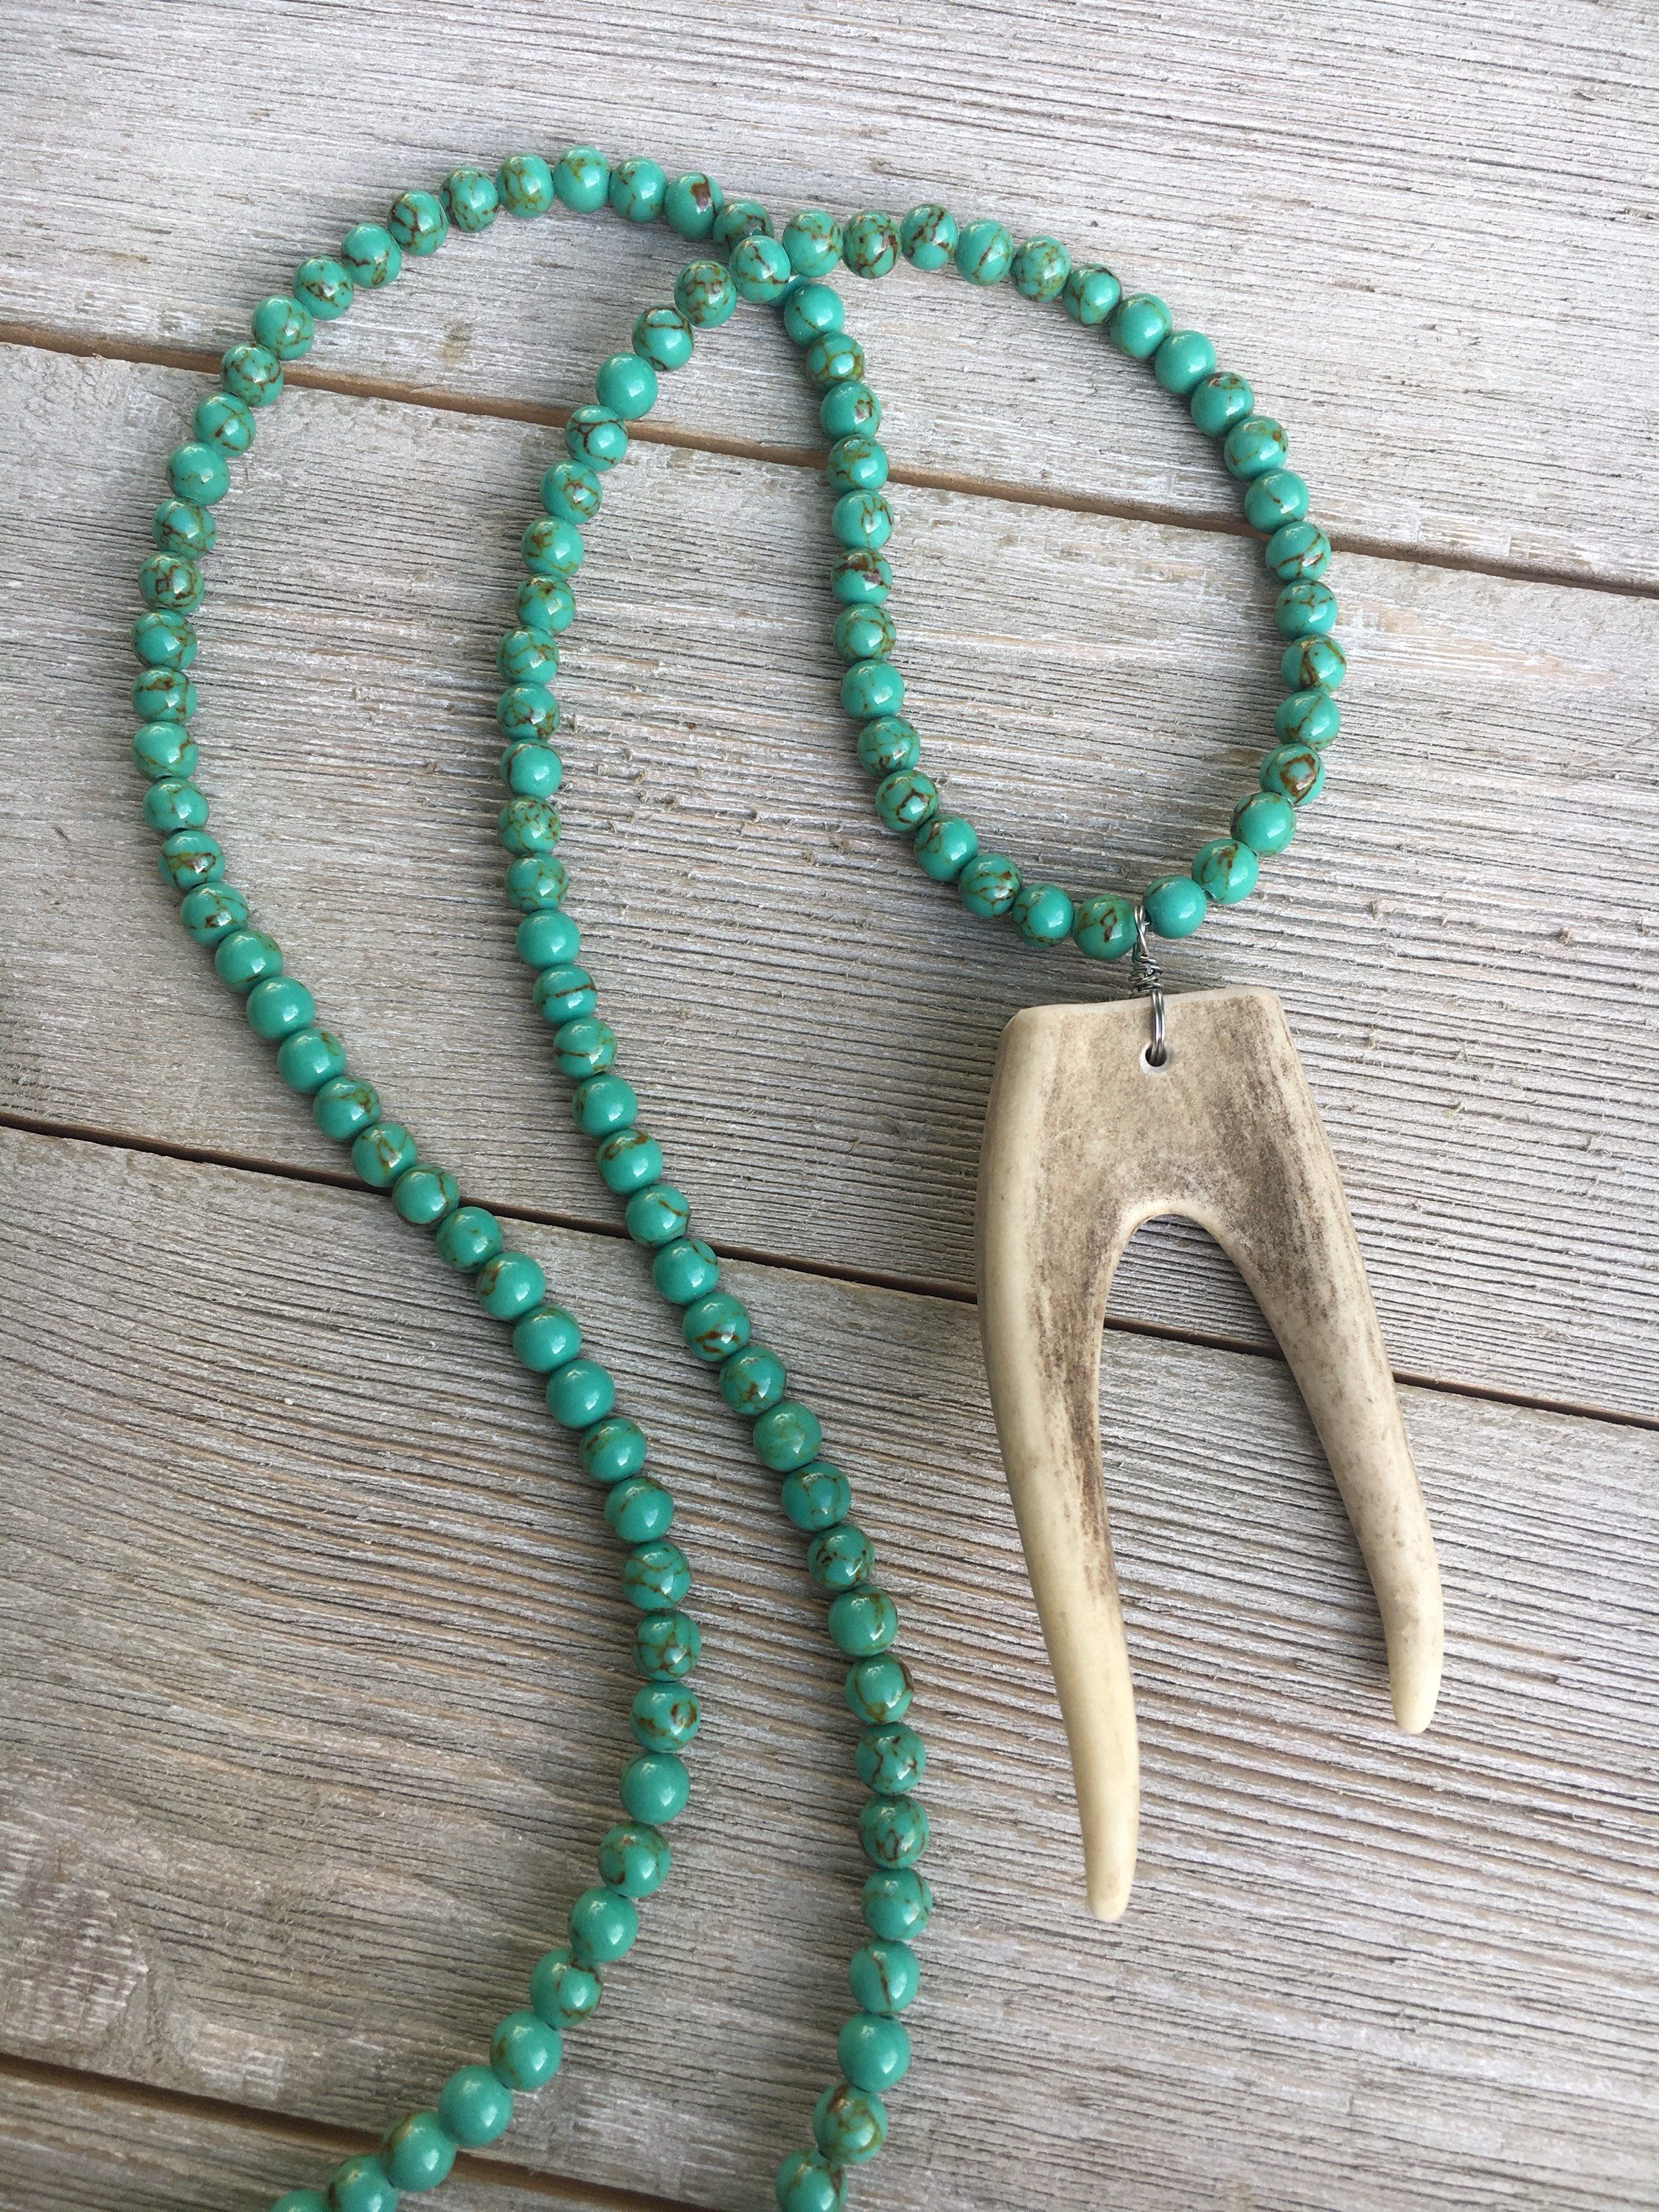 c h k products horns necklace antler u i